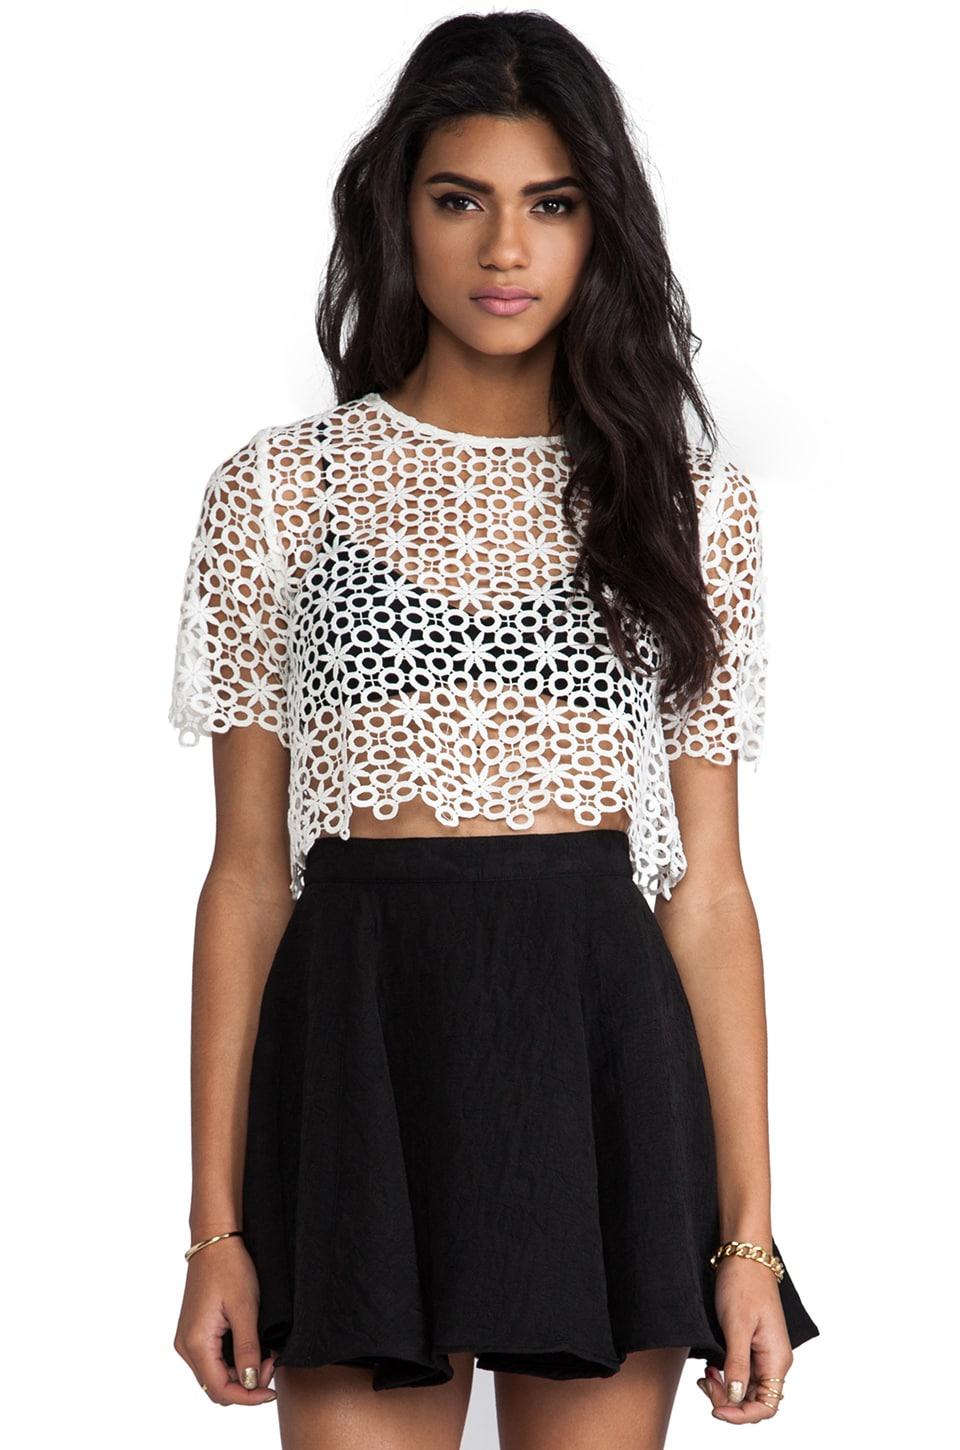 Alexis Lisette Crochet Crop Top in White Flower Crochet